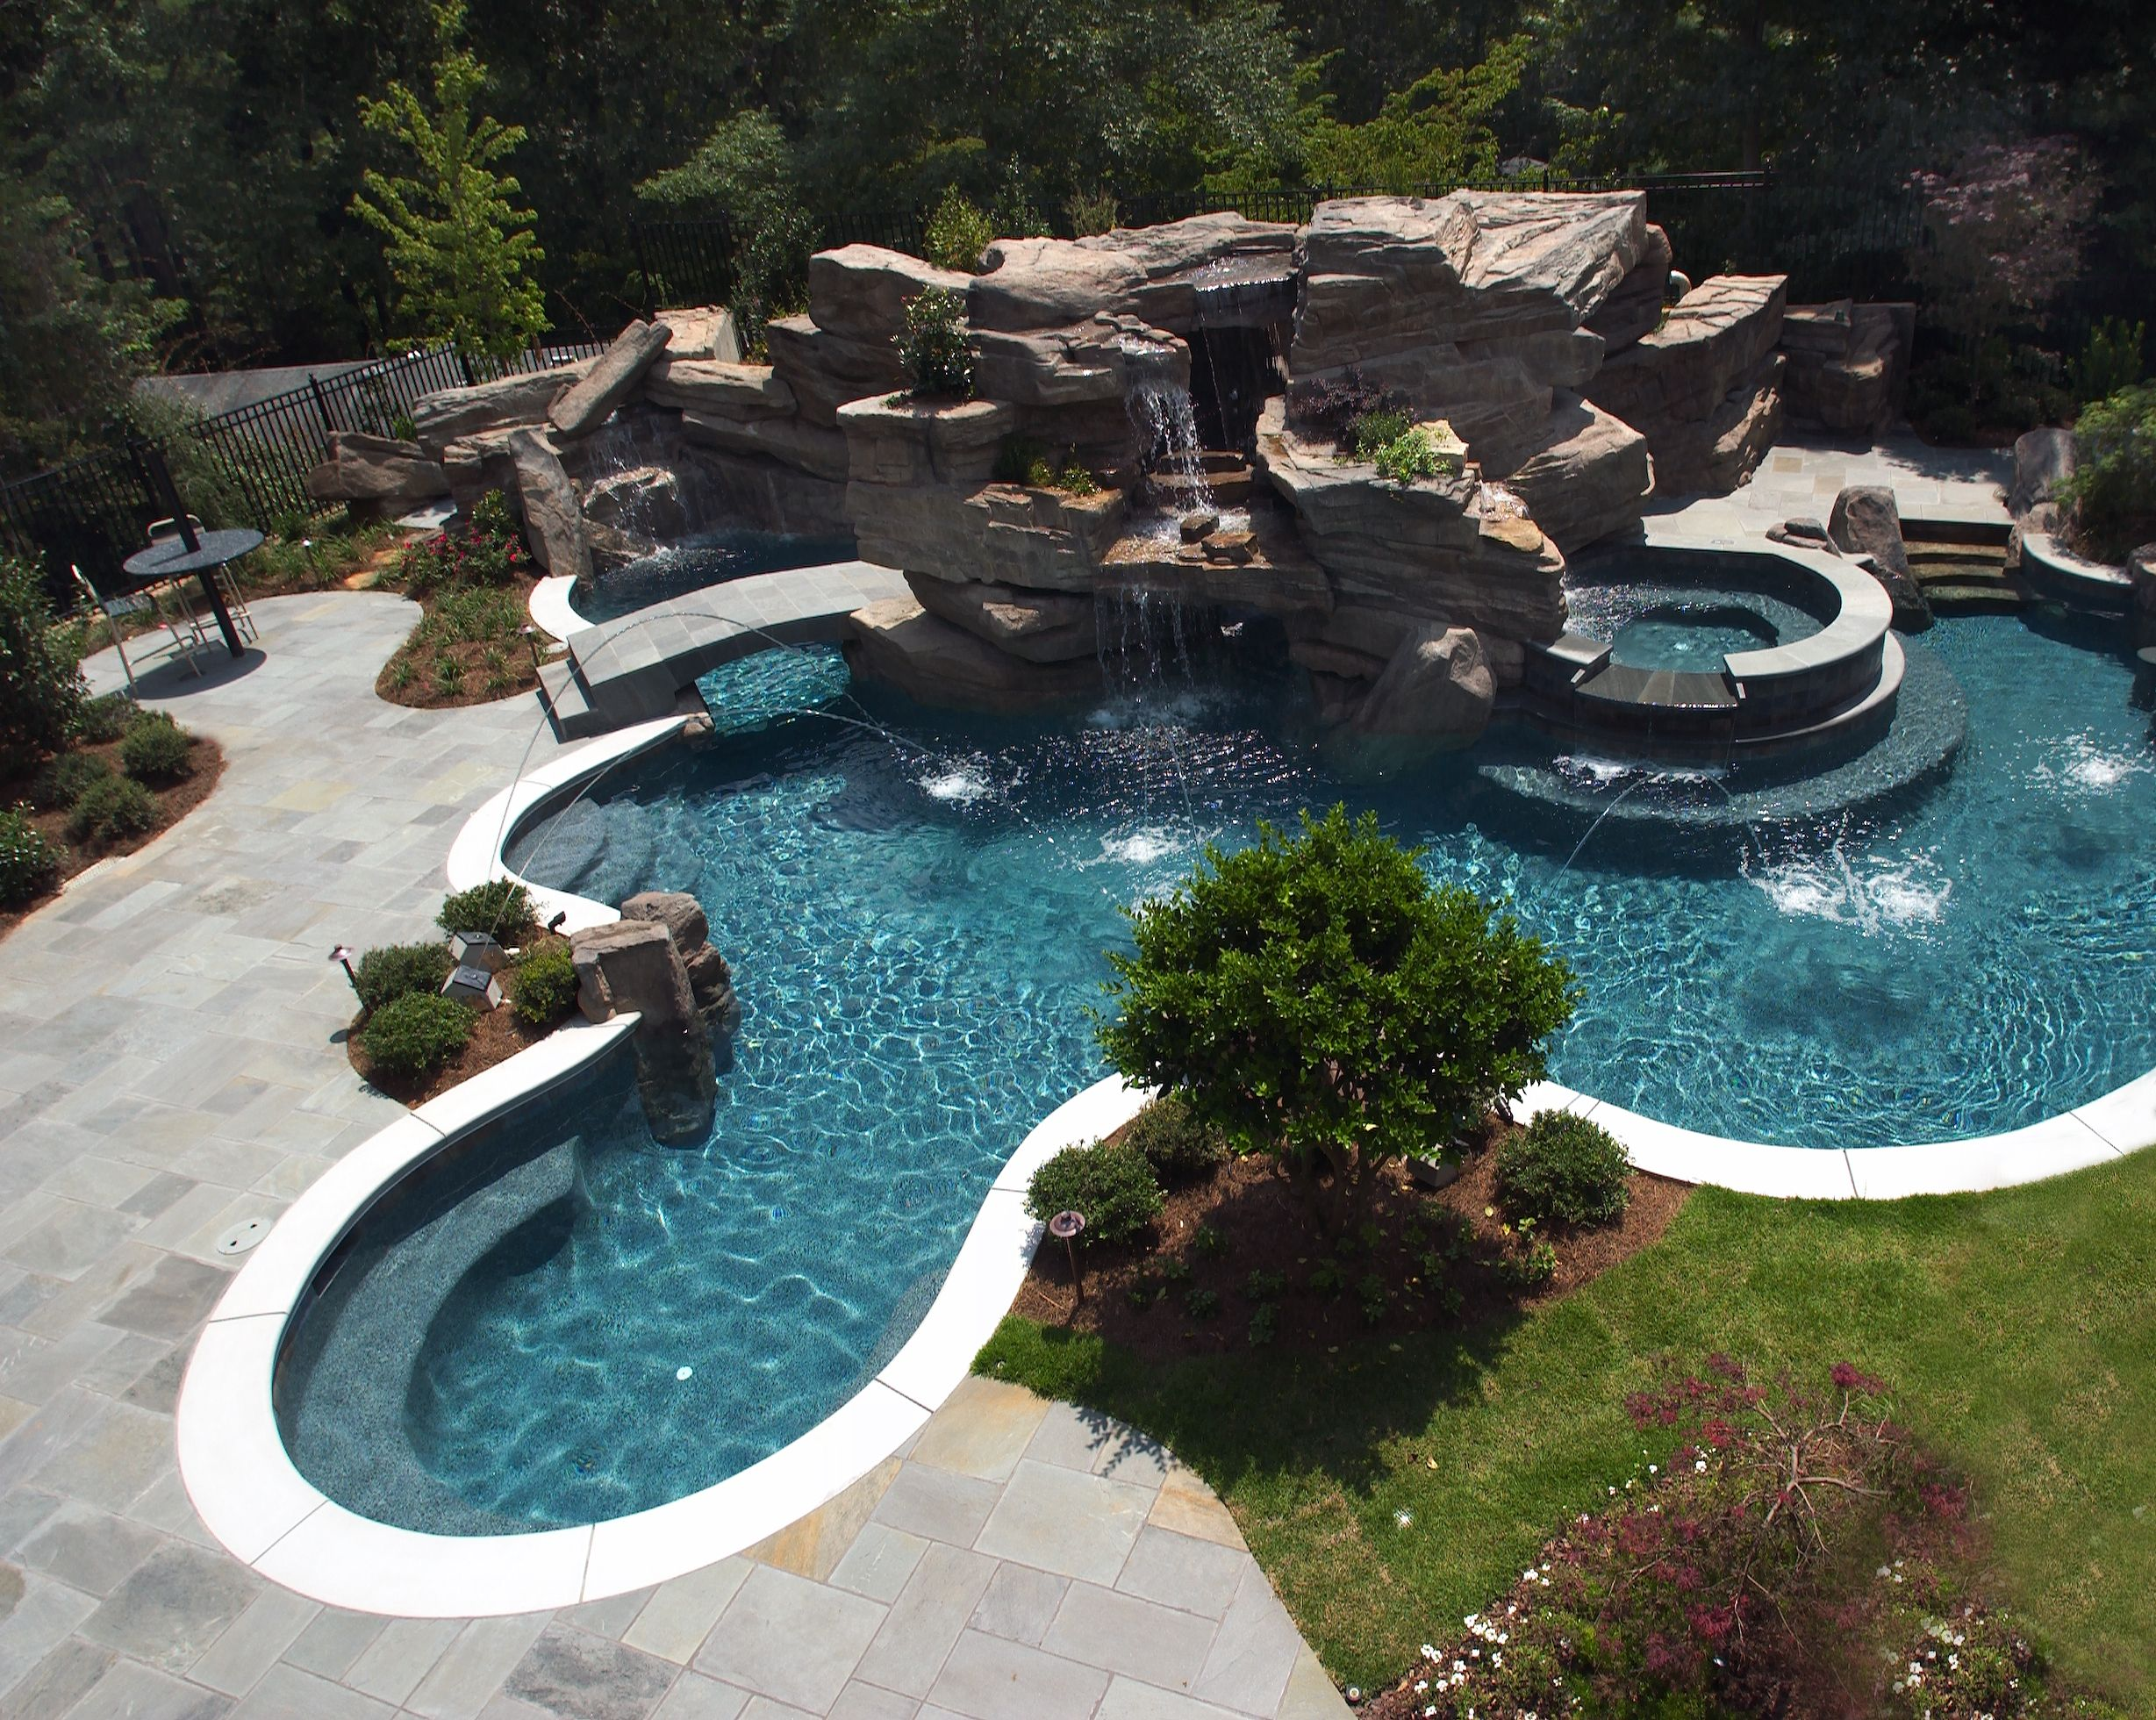 Elaborate swimming pool featuring large grotto waterfall for Pictures of swimming pools in backyards